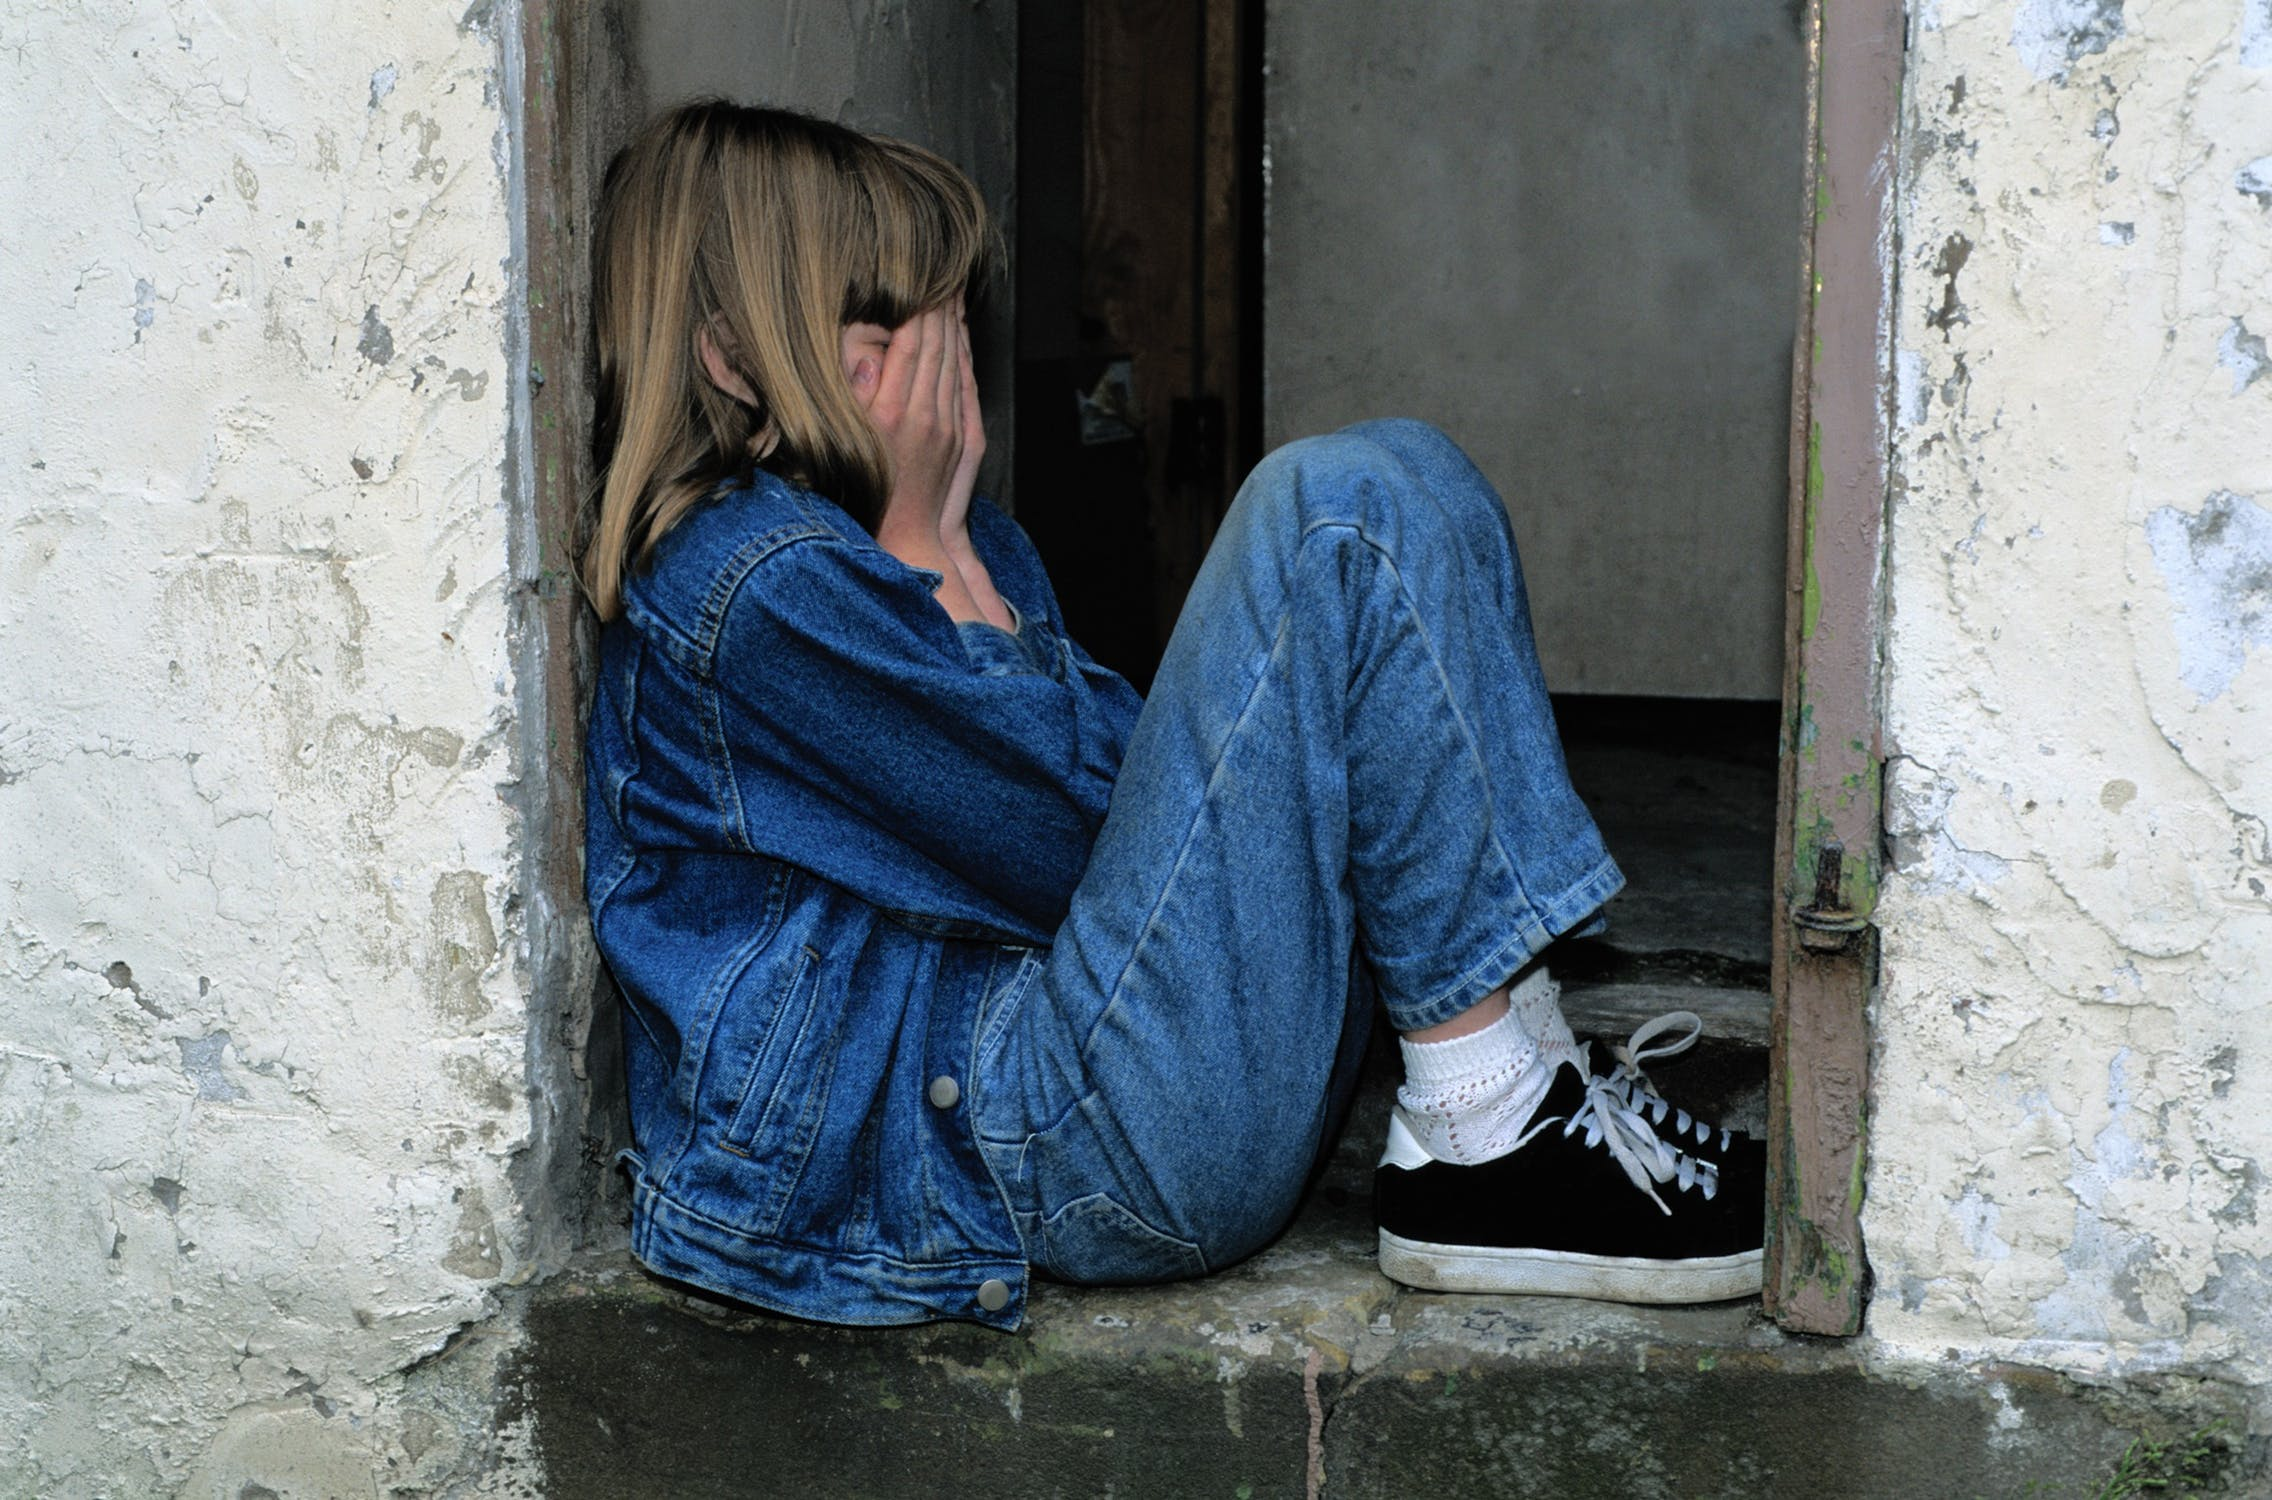 Young girl wwearing double denim with head in hands